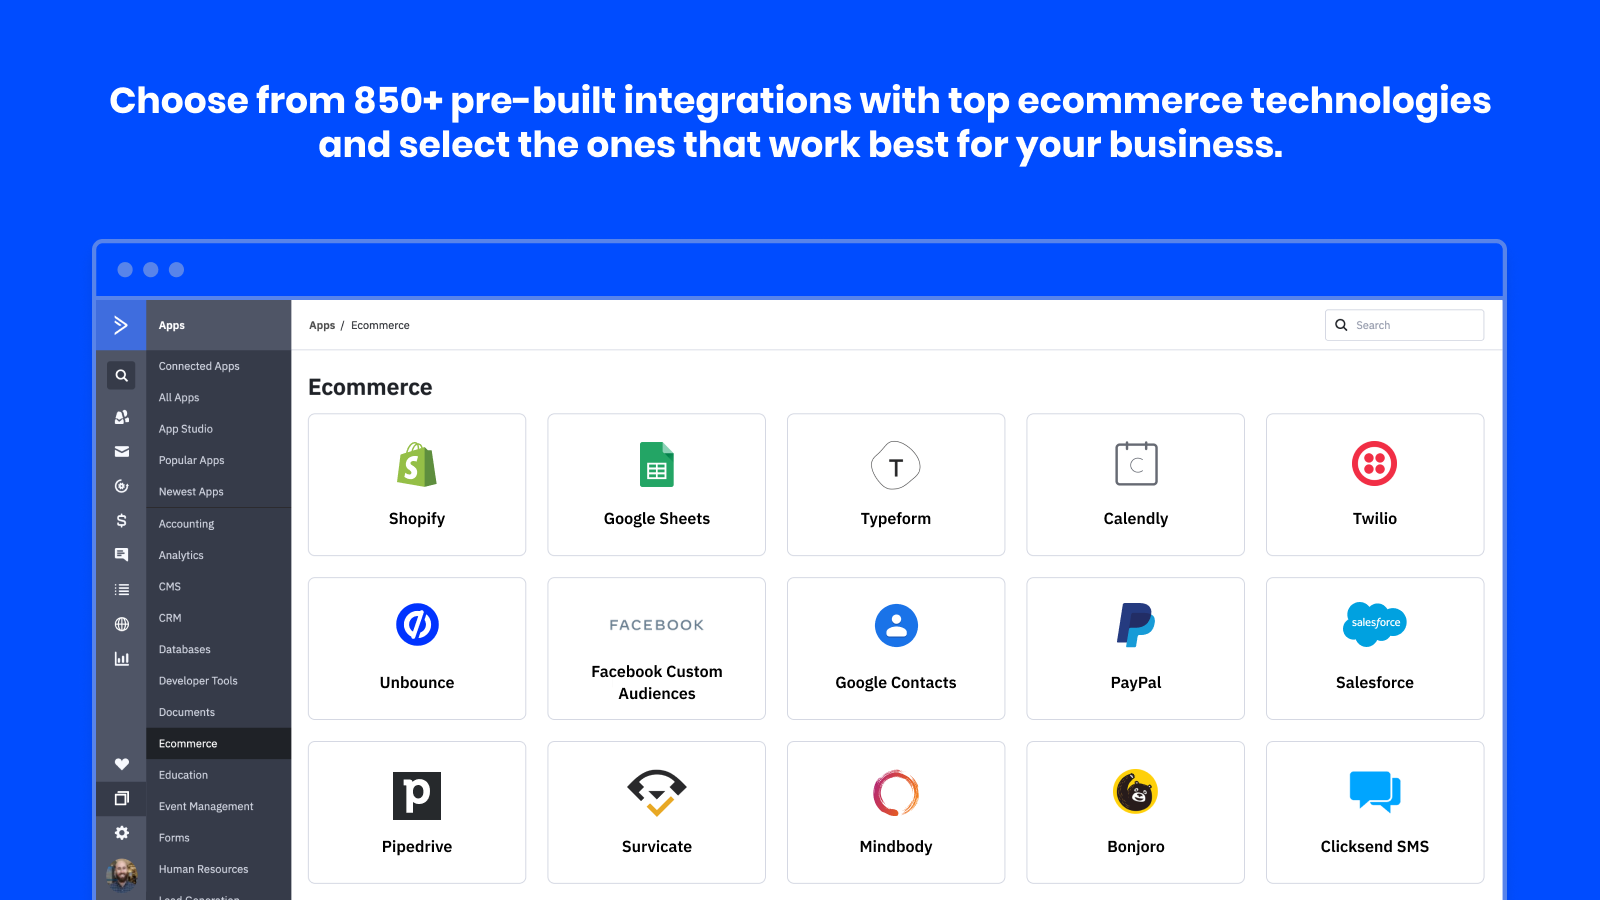 Select from one of our 850+ pre-built integrations